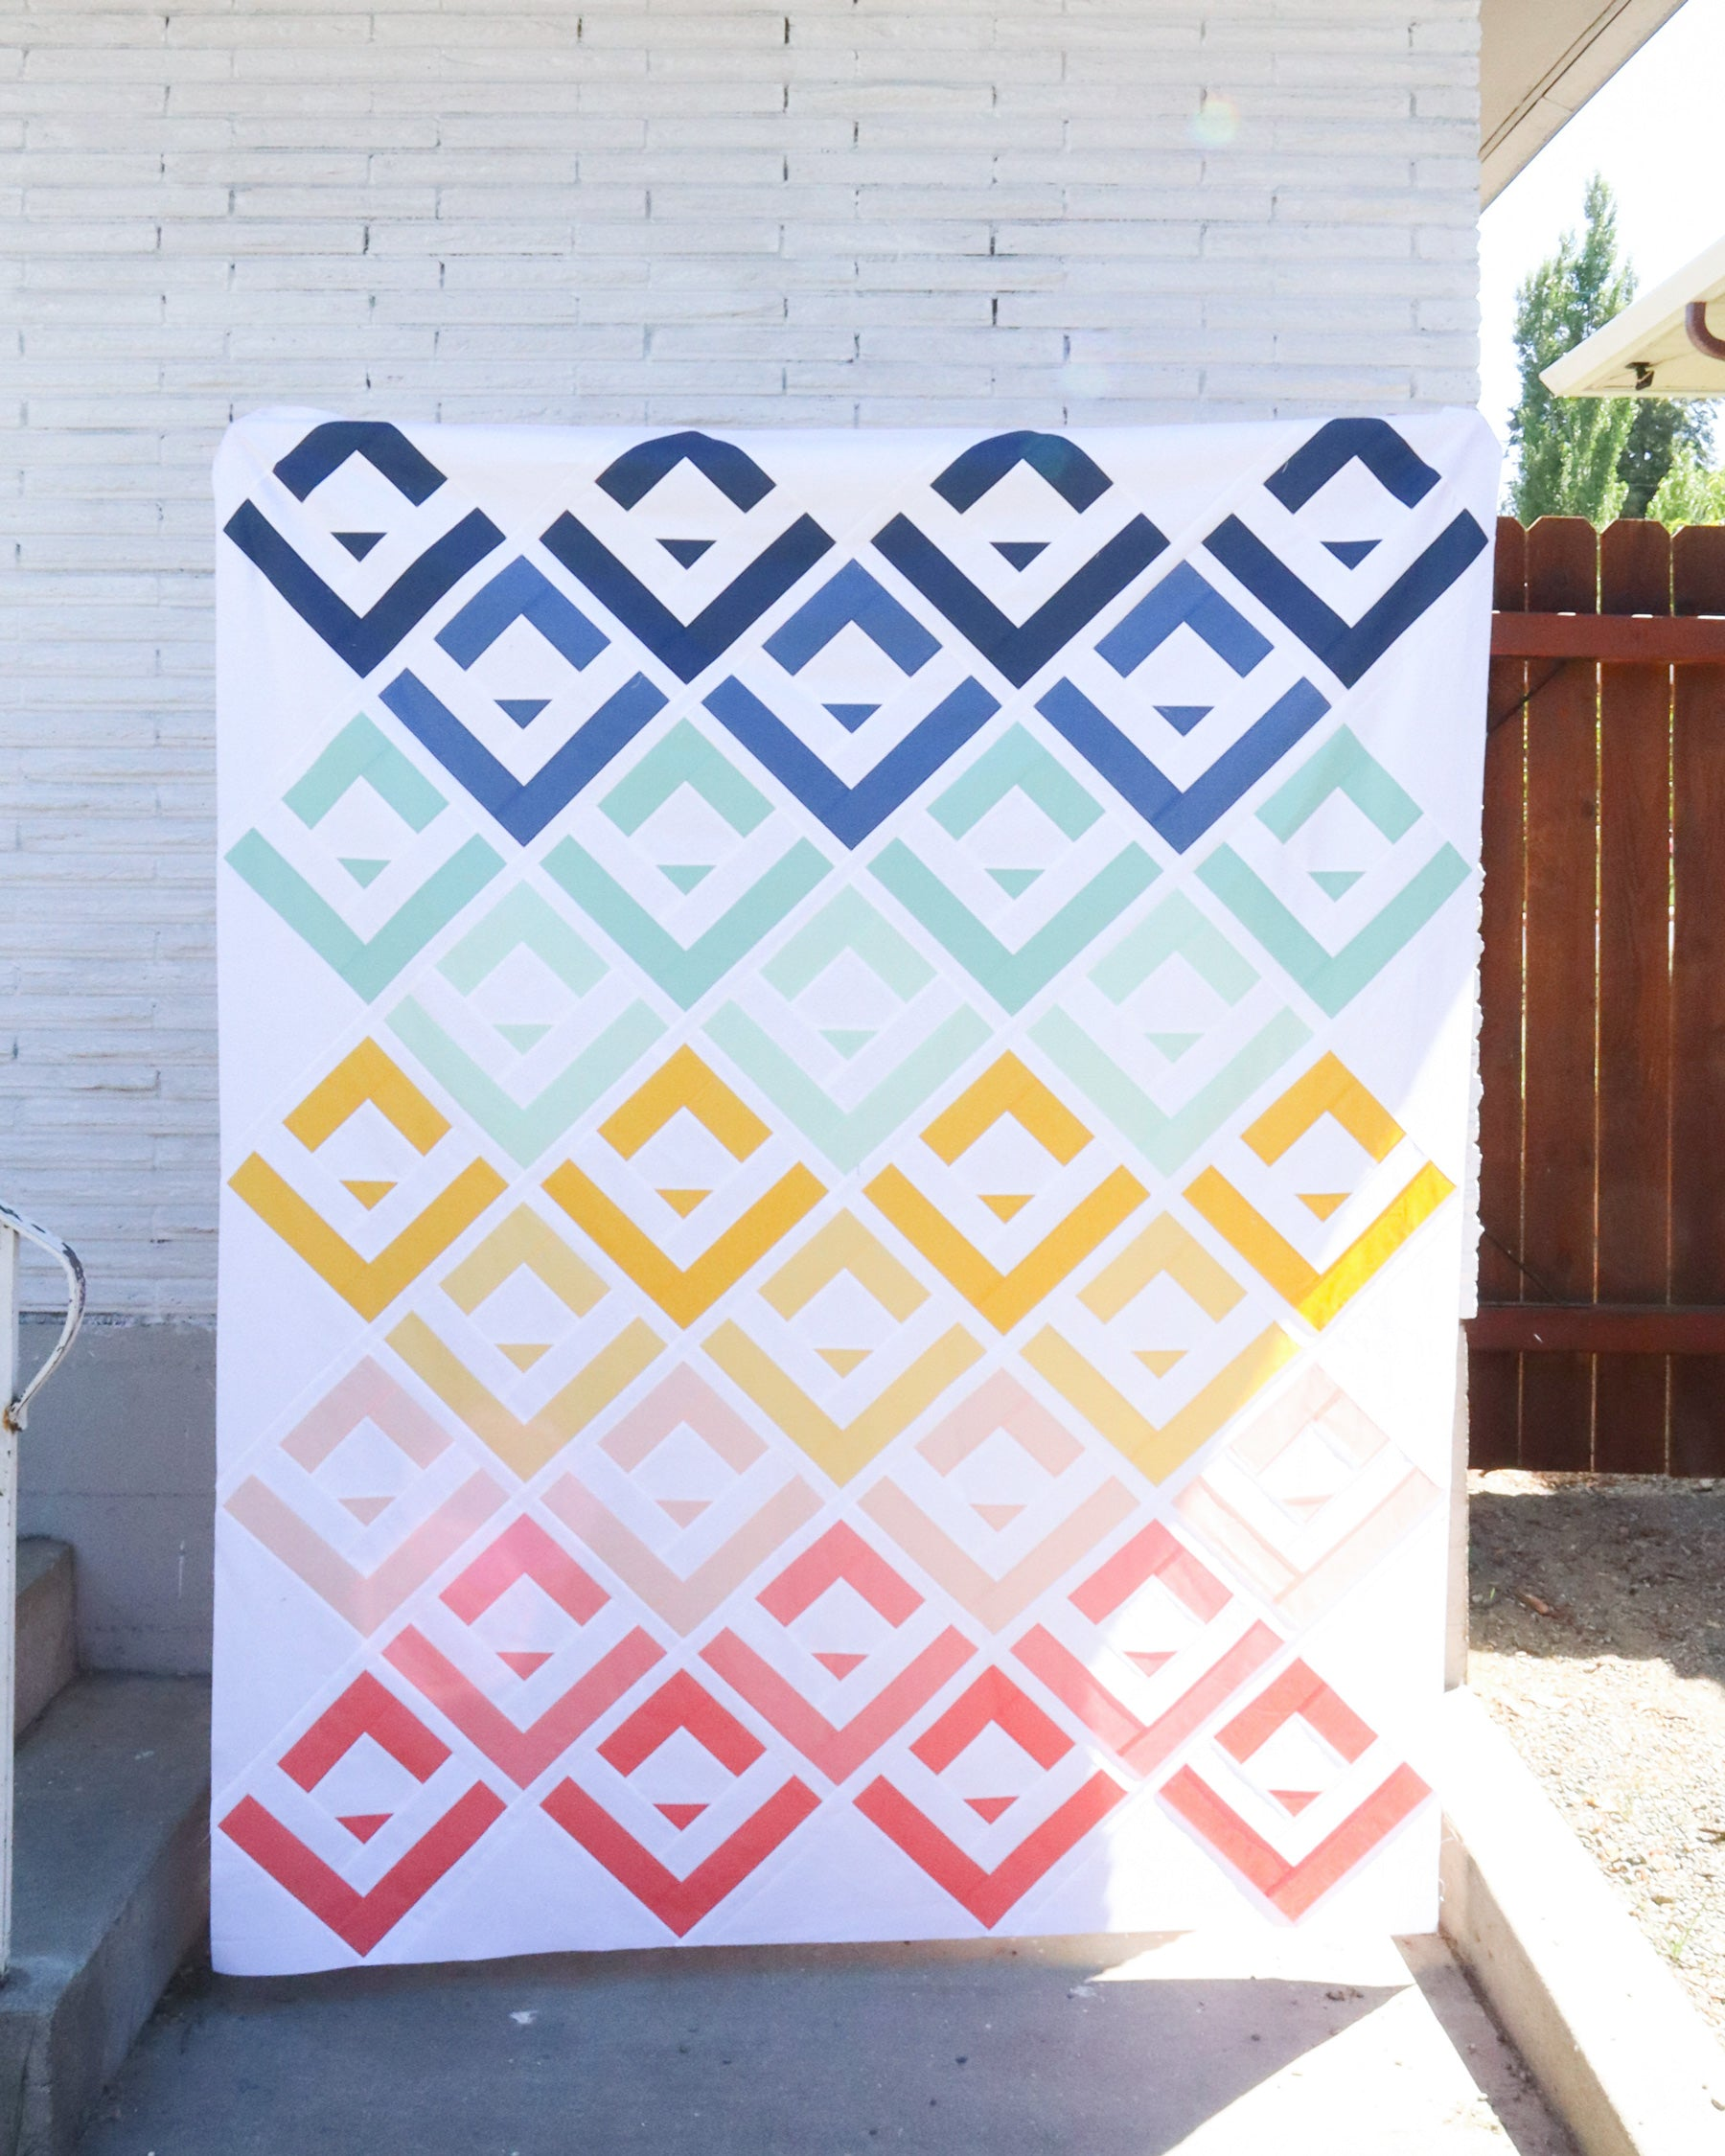 Cabin Valley quilt top - a modern log cabin quilt pattern by Cotton and Joy